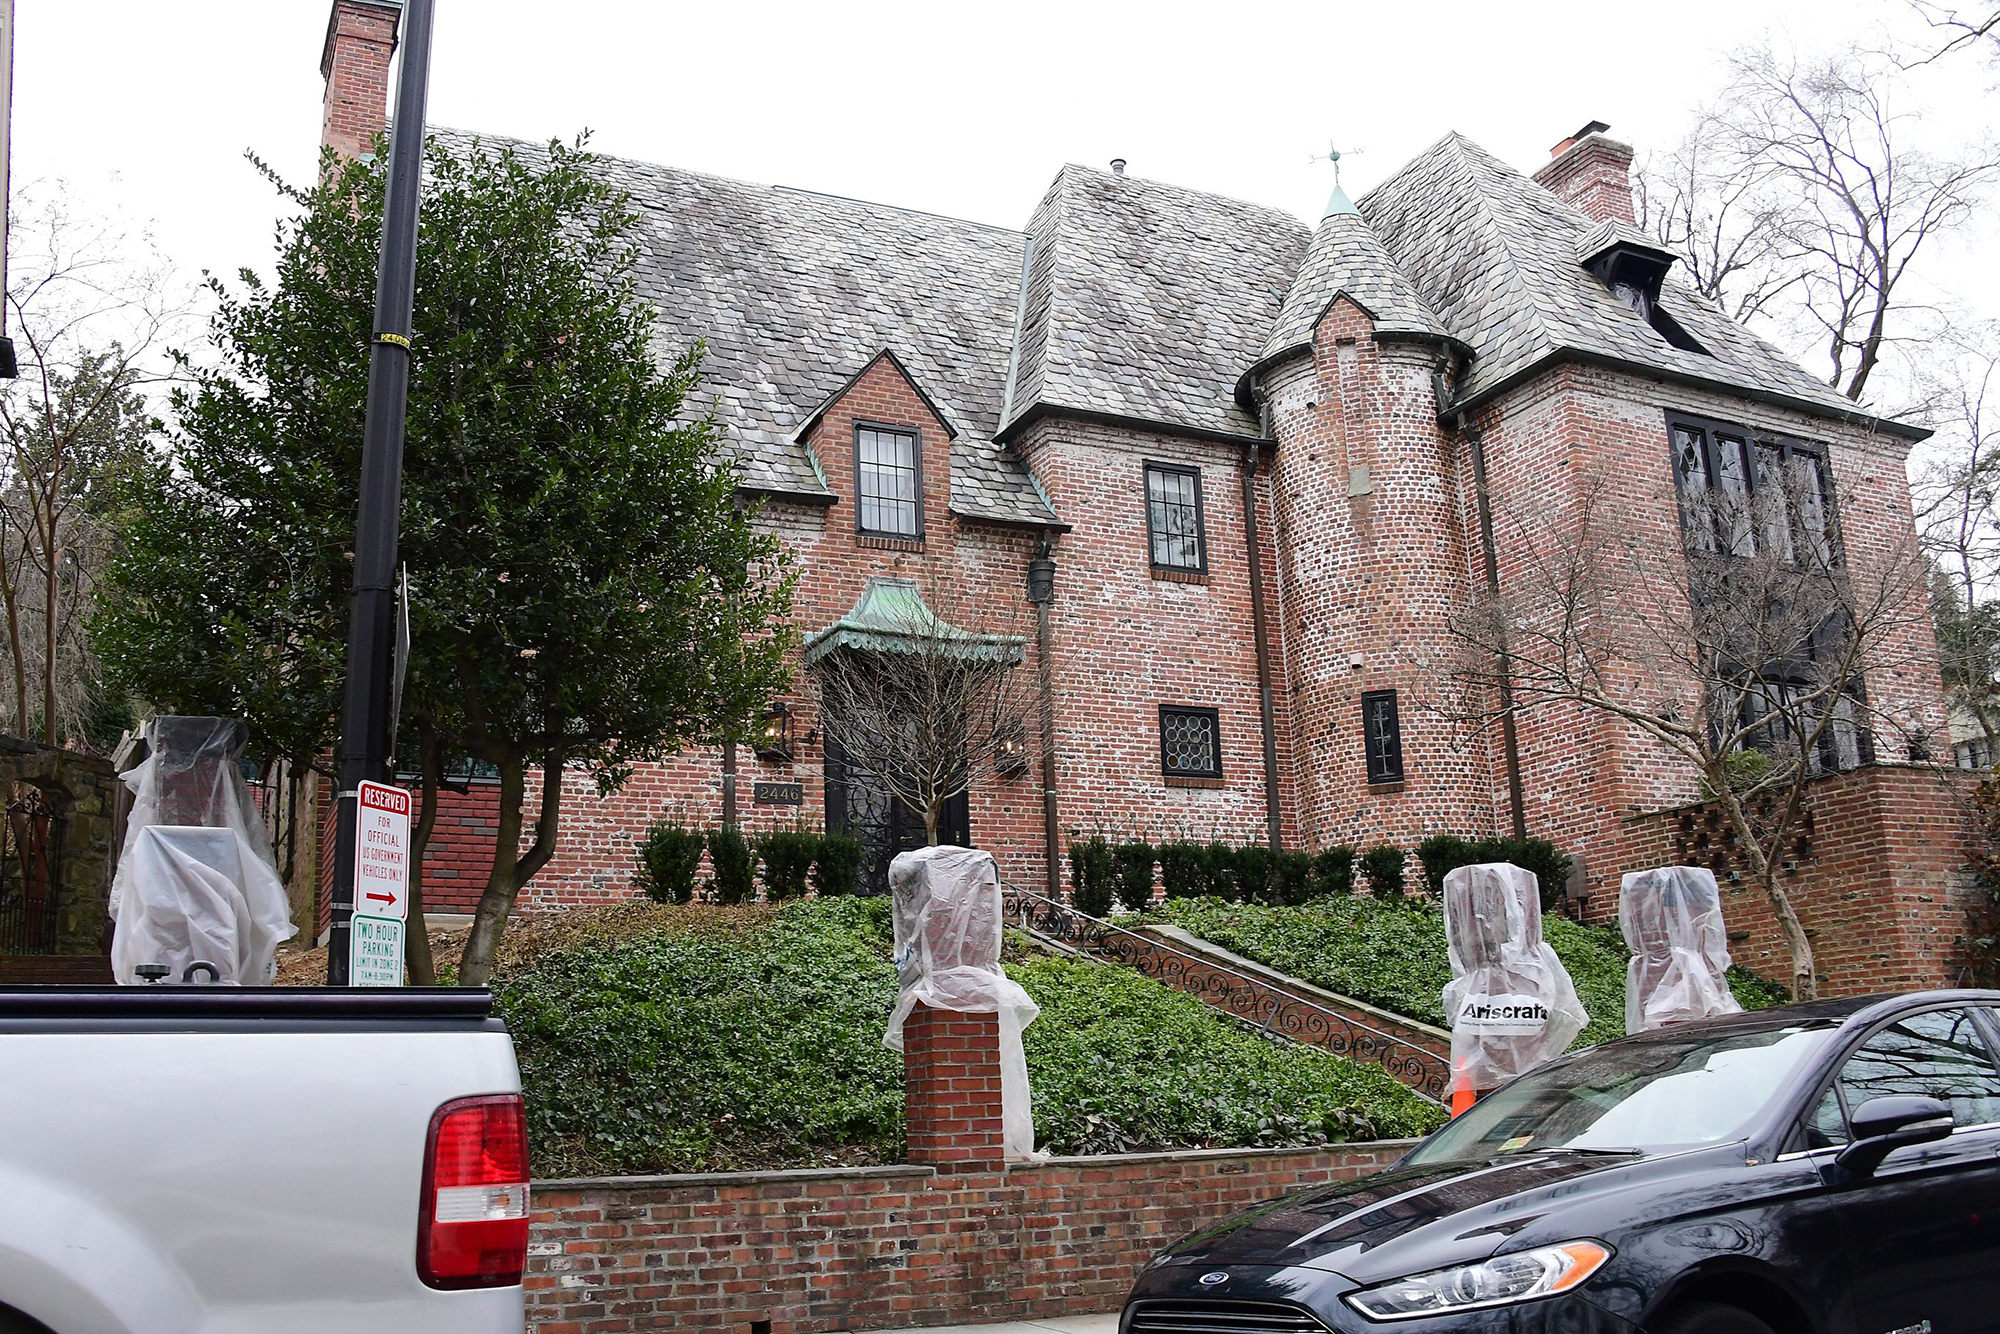 the Obama's red brick home that does not have a 10 foot wall around it